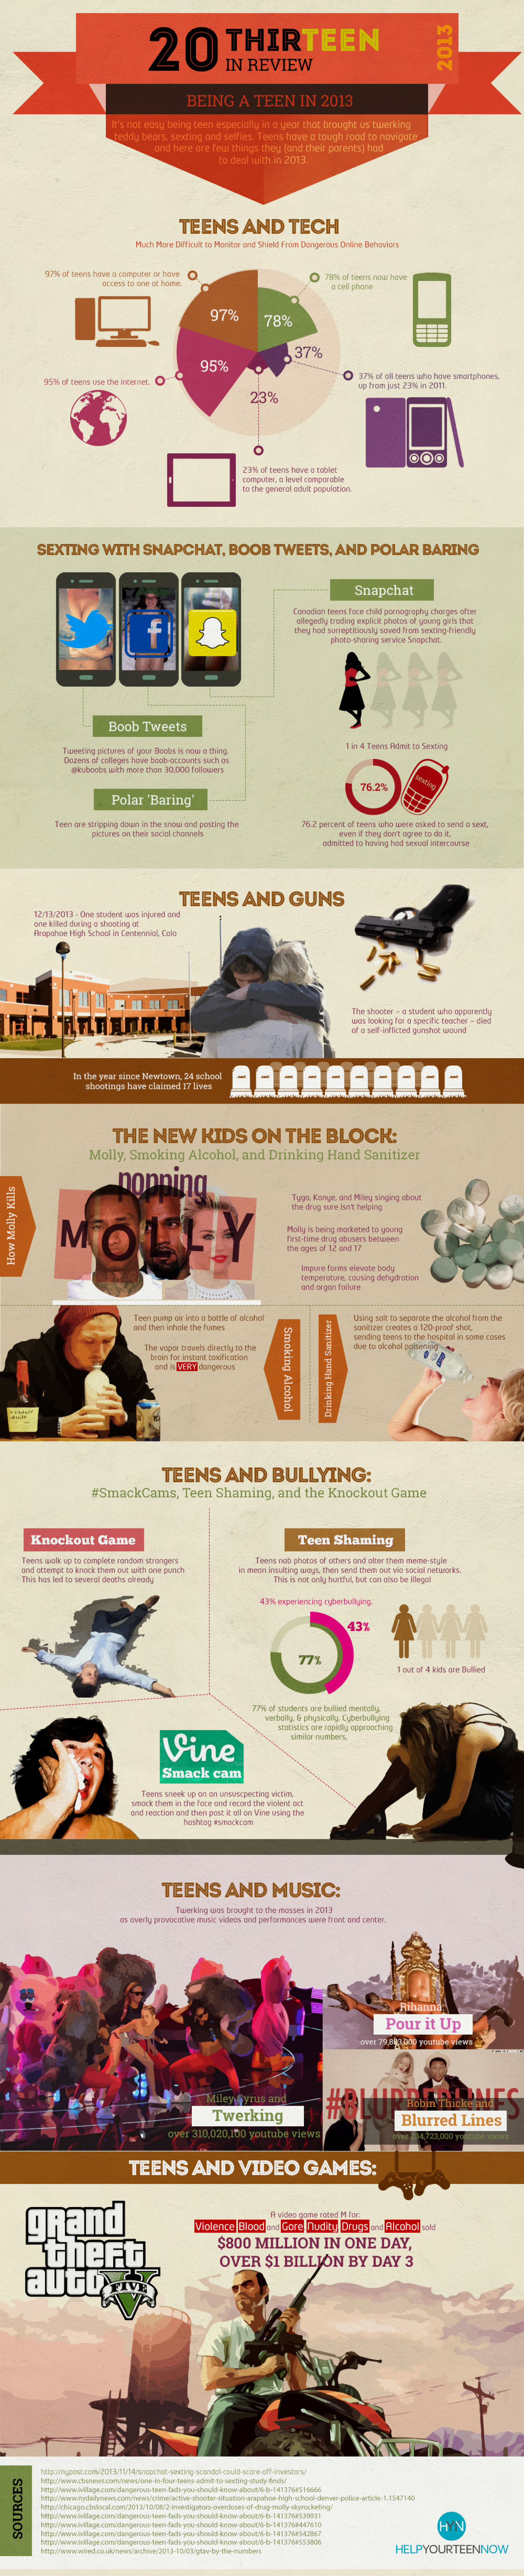 2013 In Review – Being A Teen In 2013 Infographic